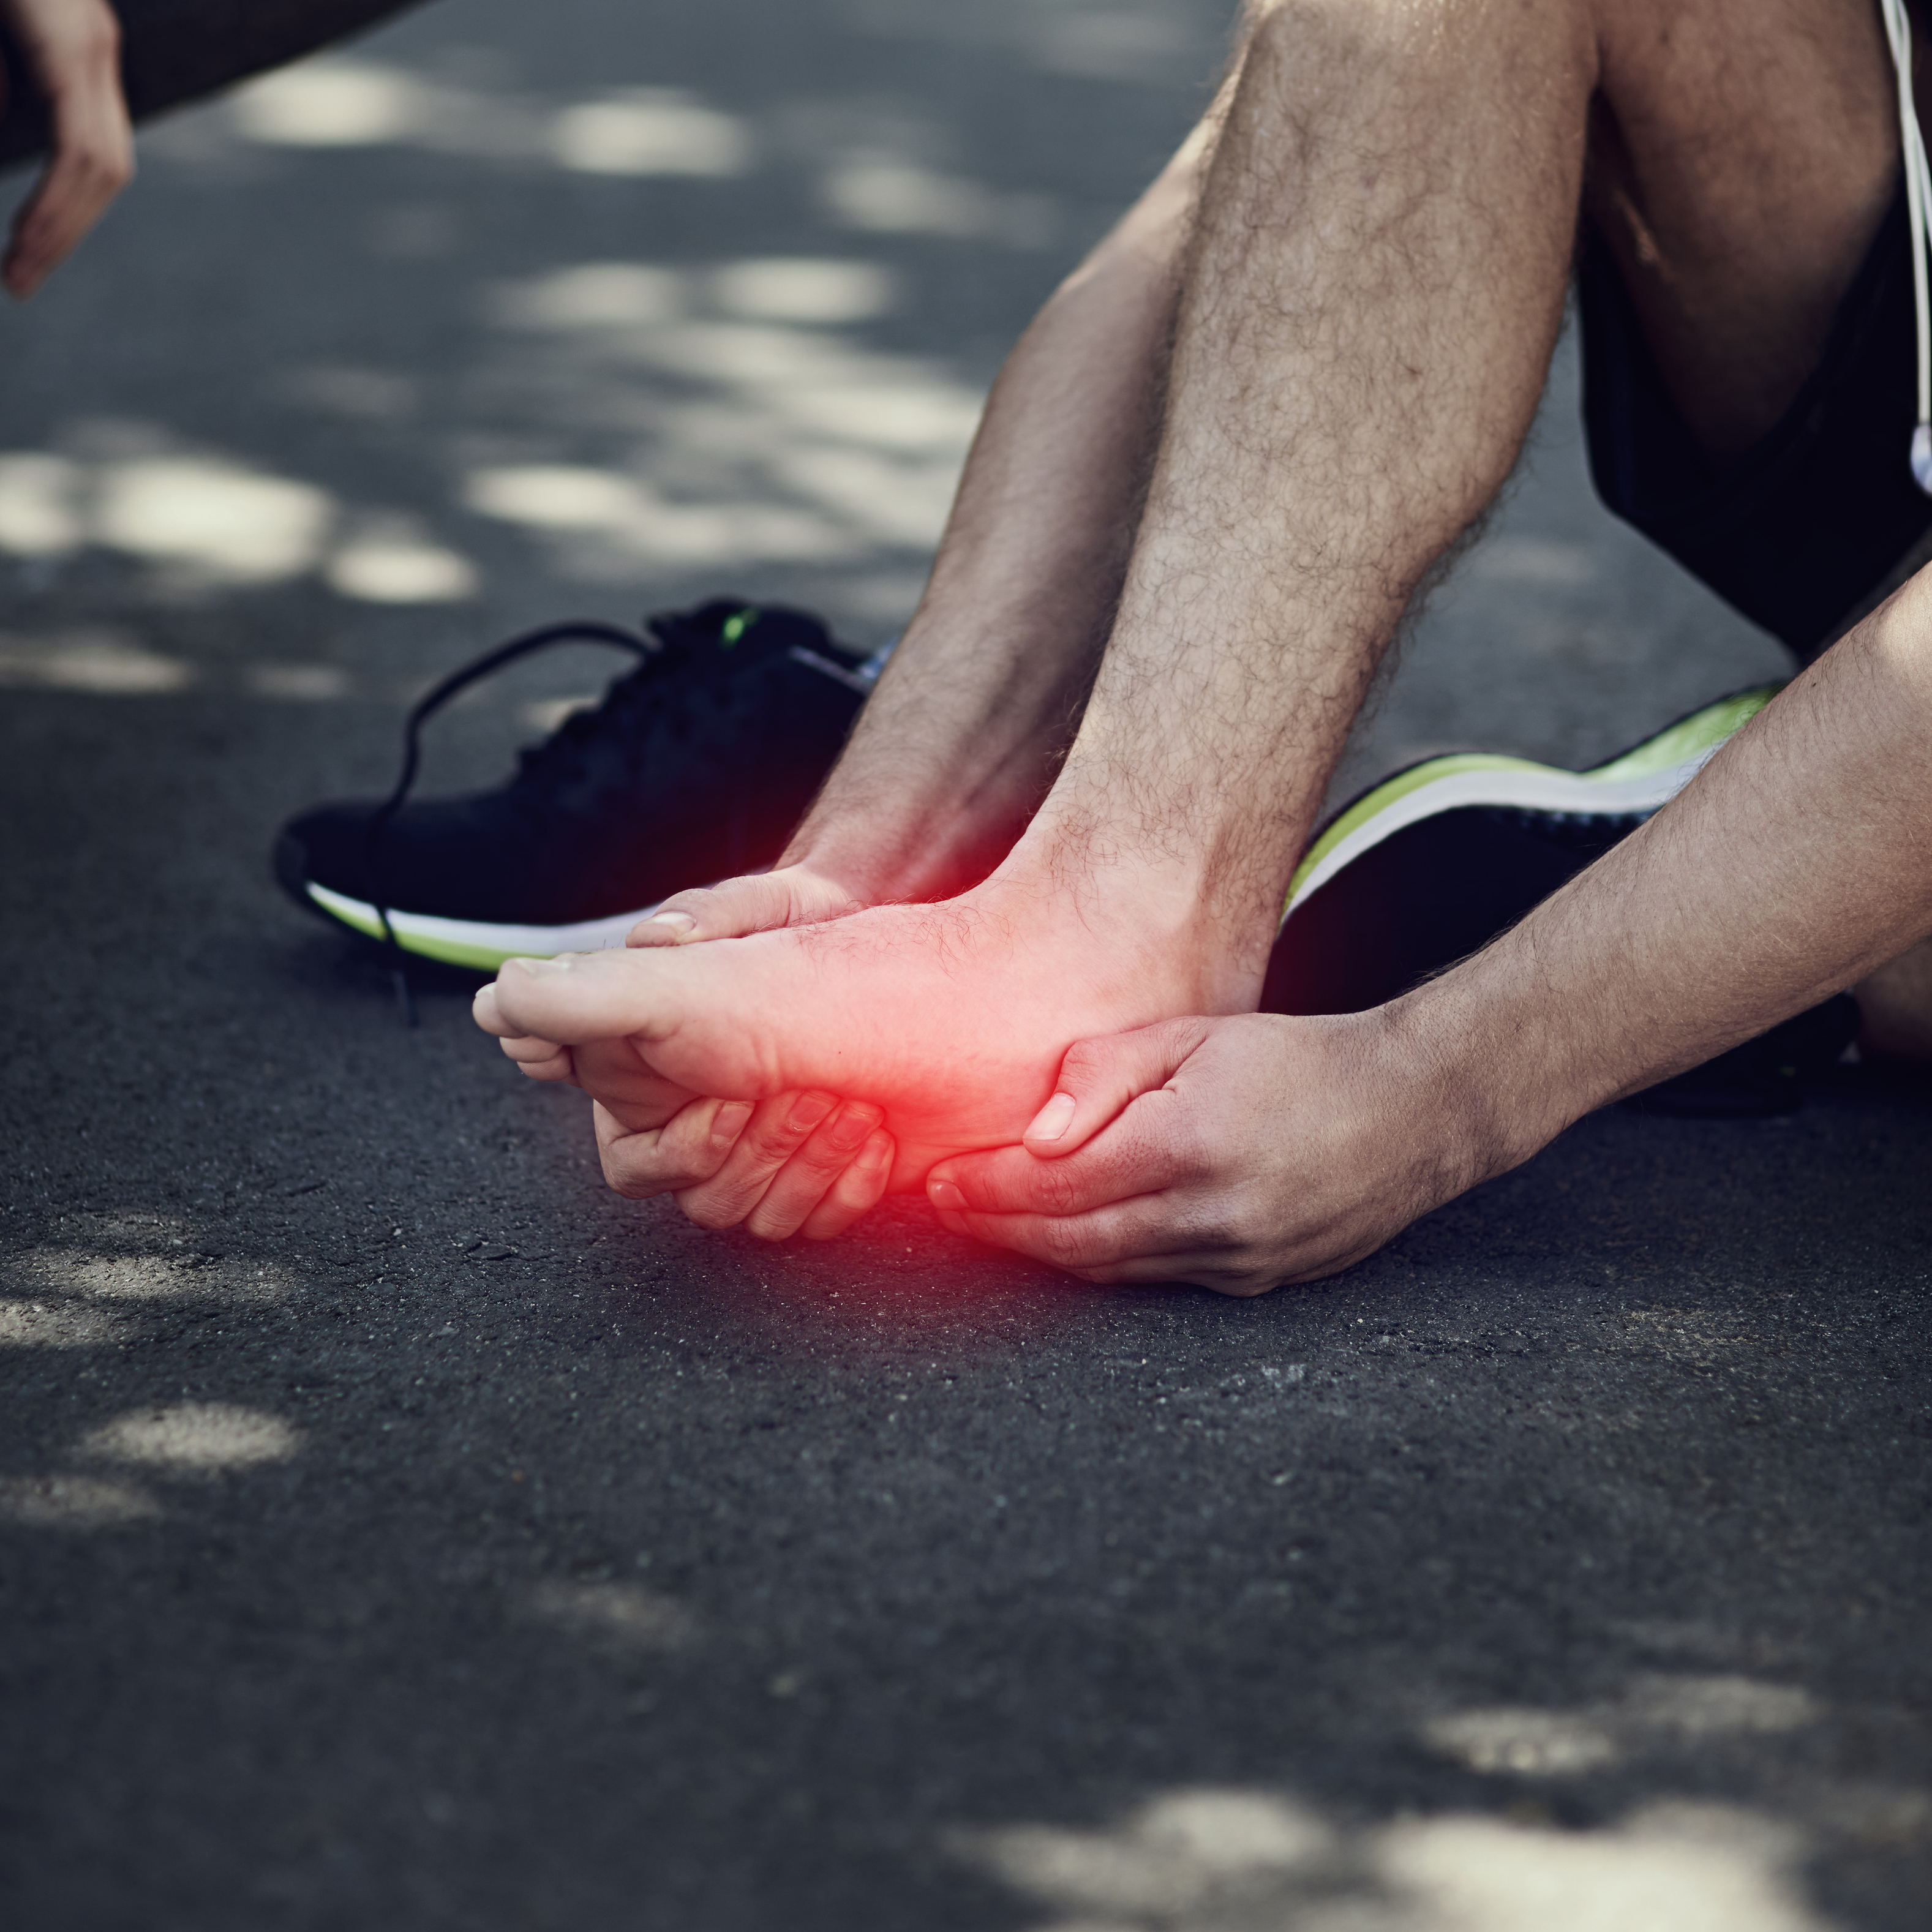 HOW DO YOU KNOW IF YOU HAVE A STRESS FRACTURE?